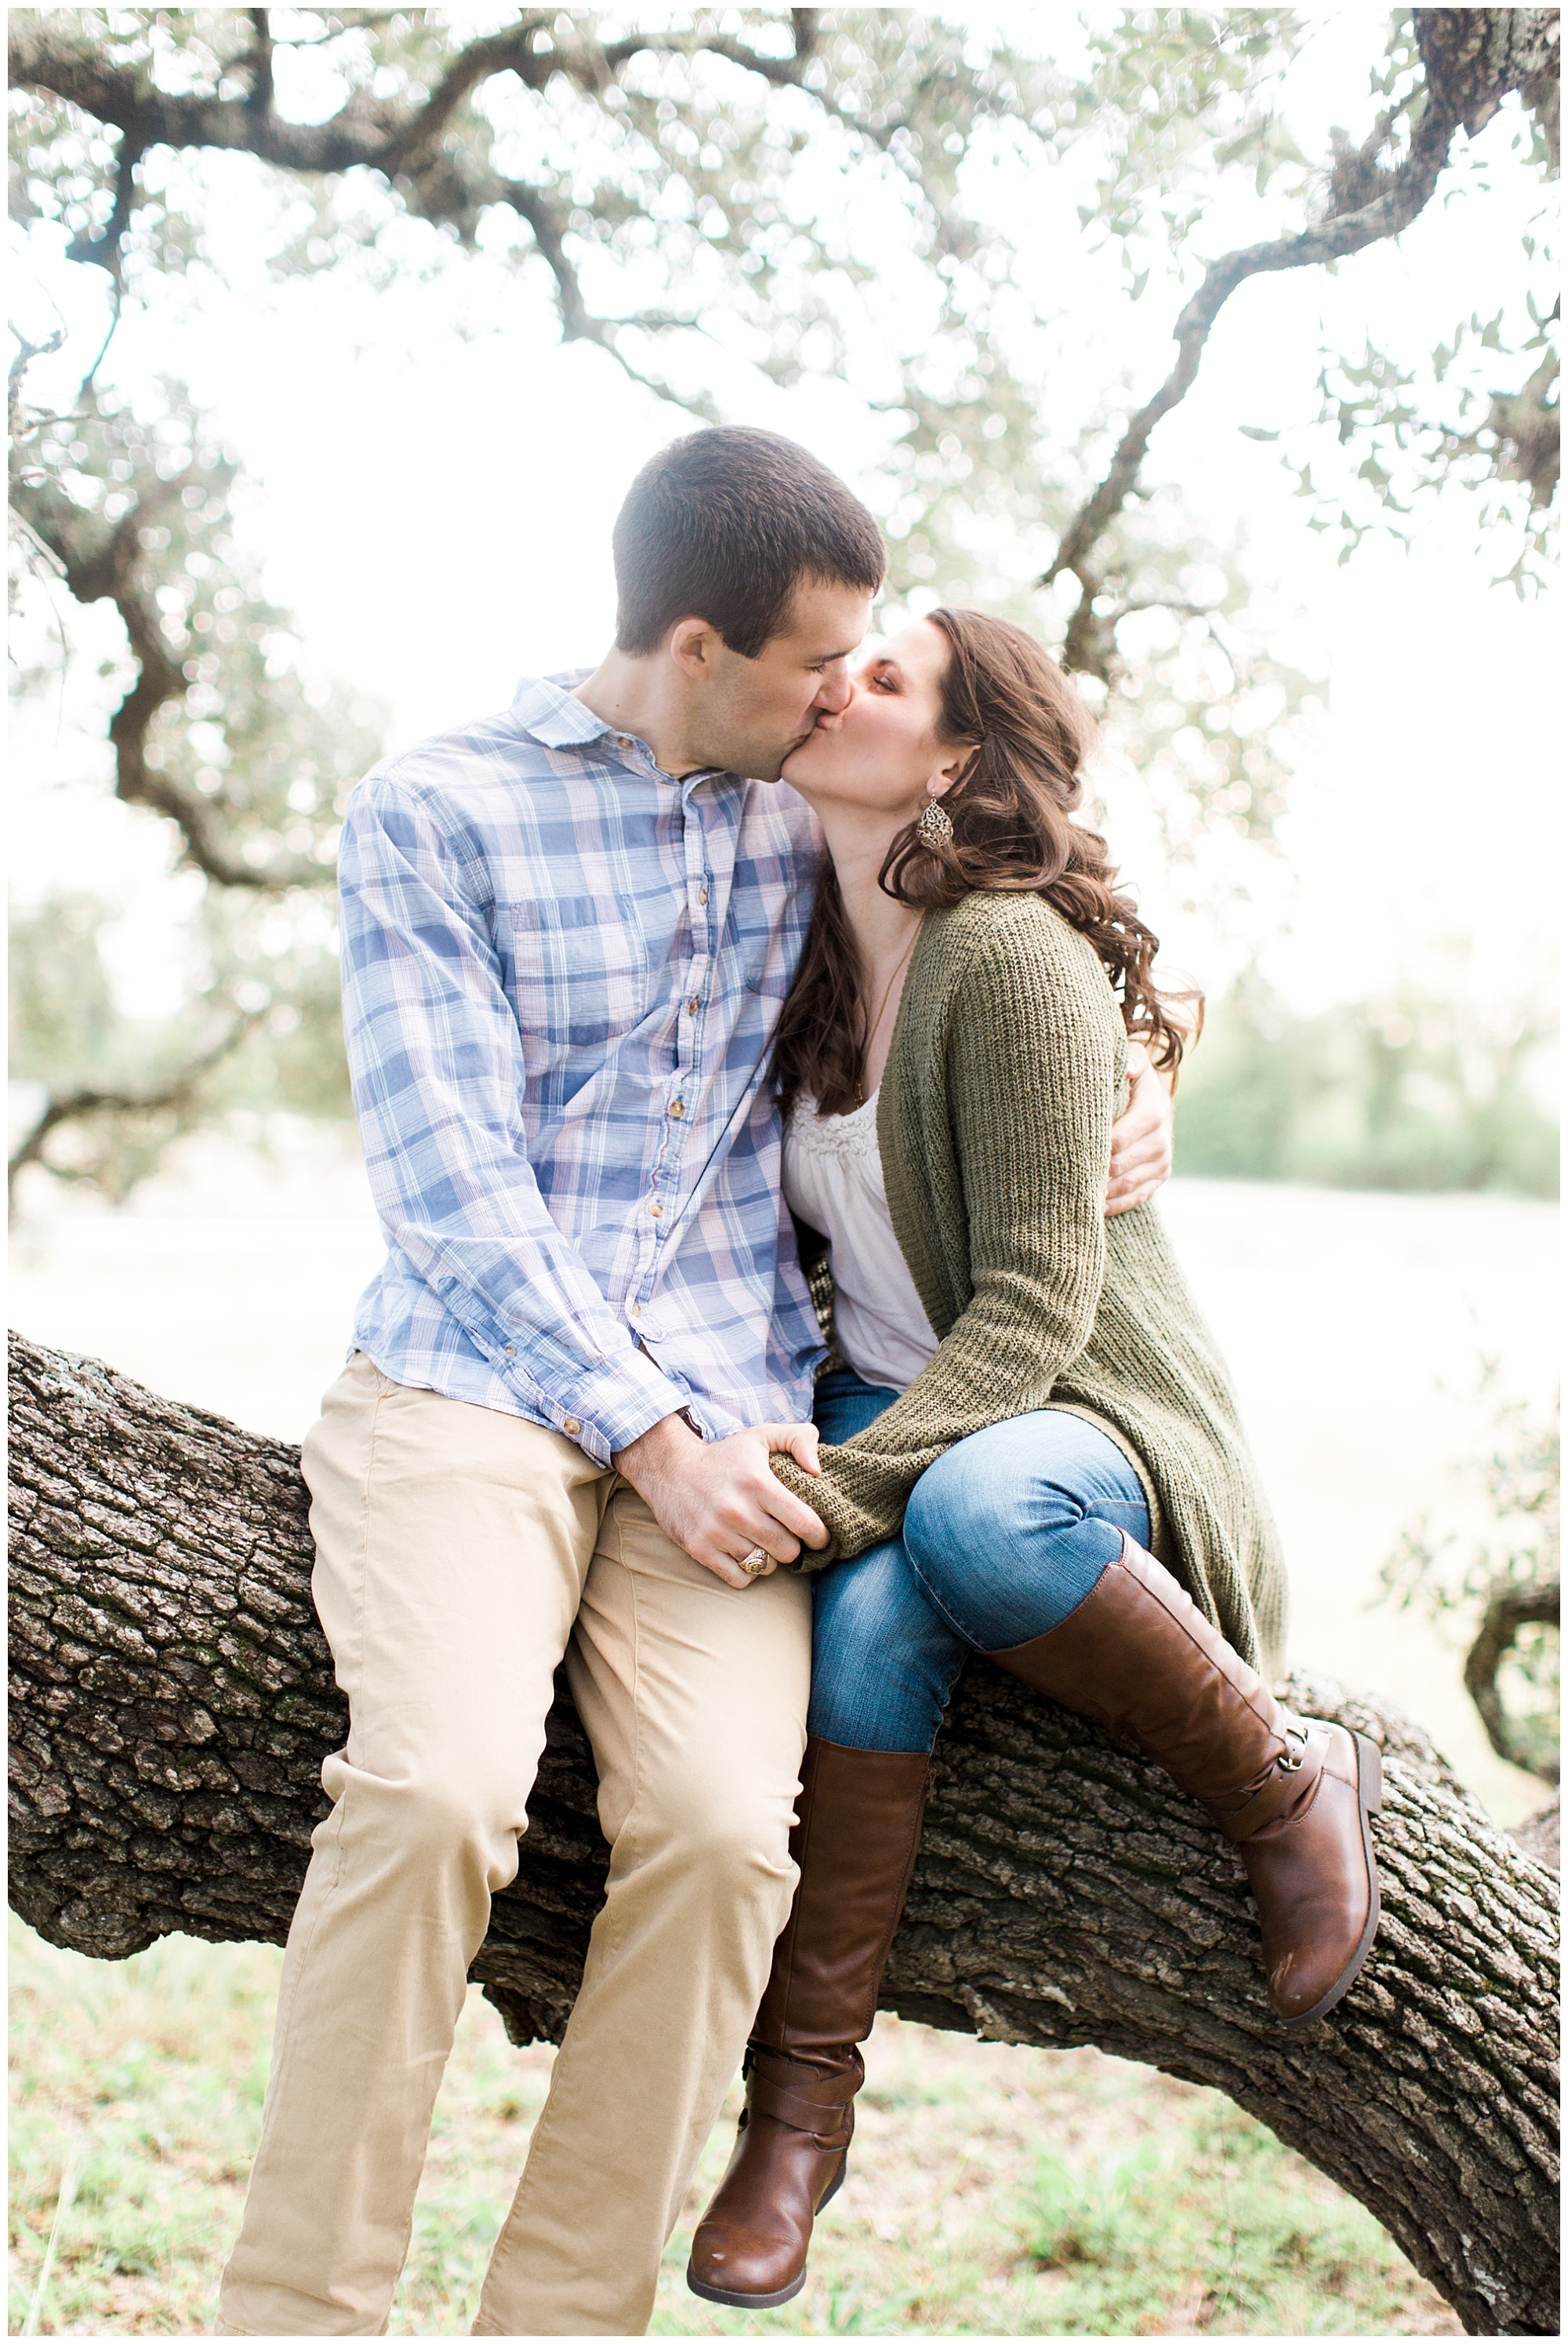 Old_Baylor_Park_Engagement_Session_0018.jpg